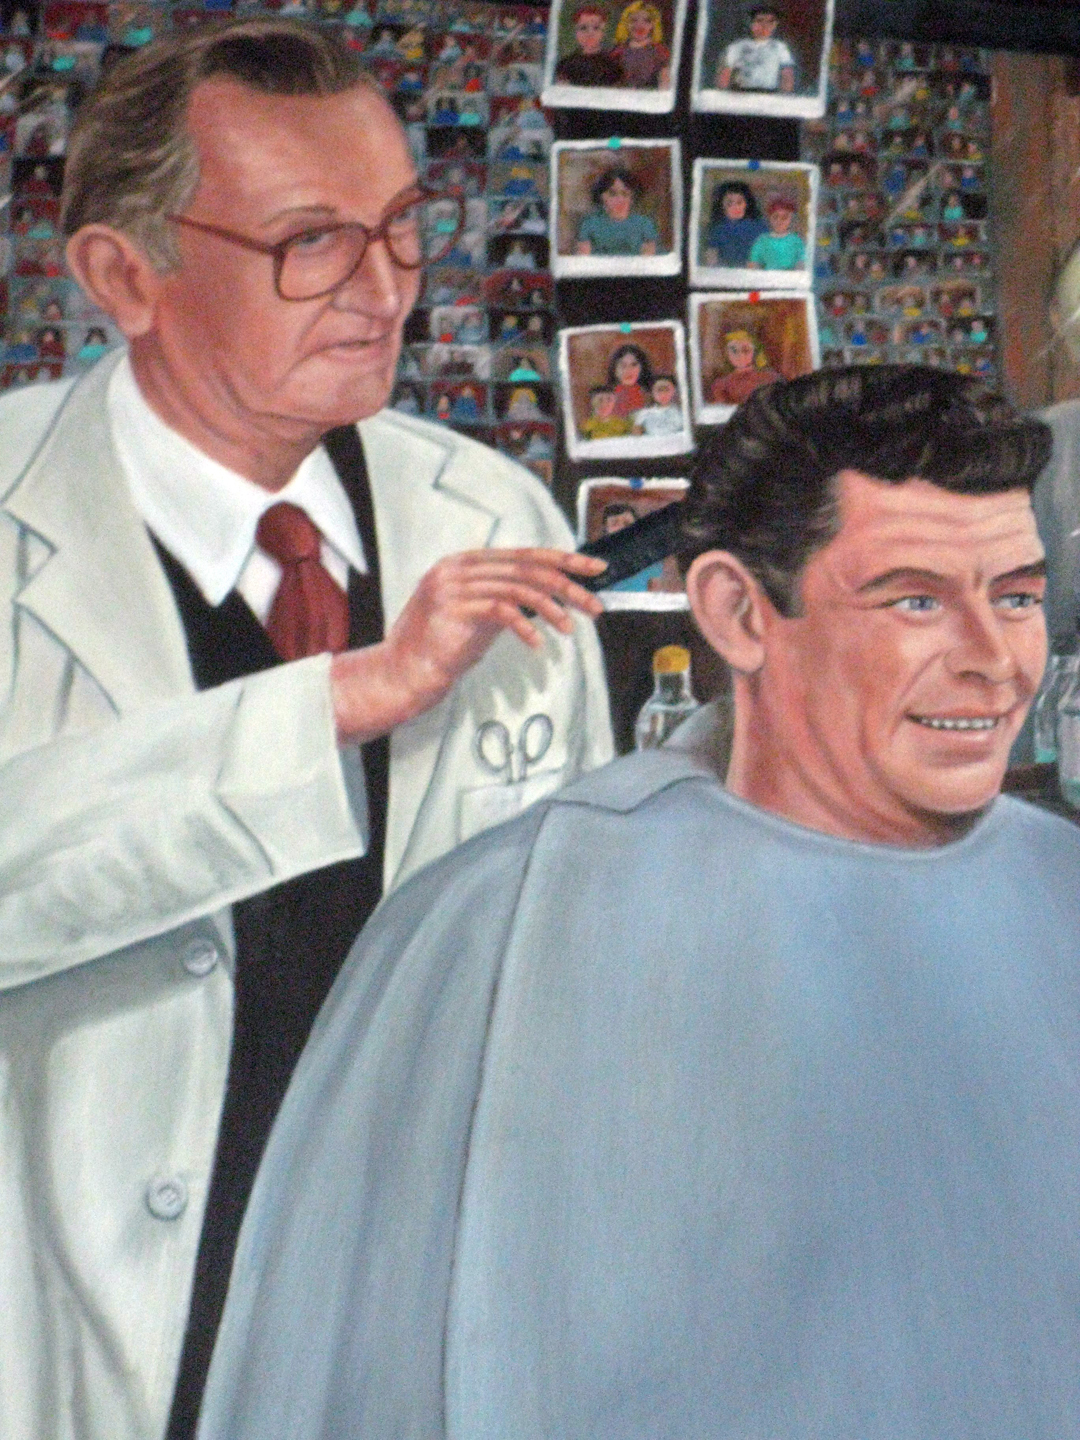 Barber Realty : ... slip: The real Floyds Barber Shop of Mount Airy, North Carolina